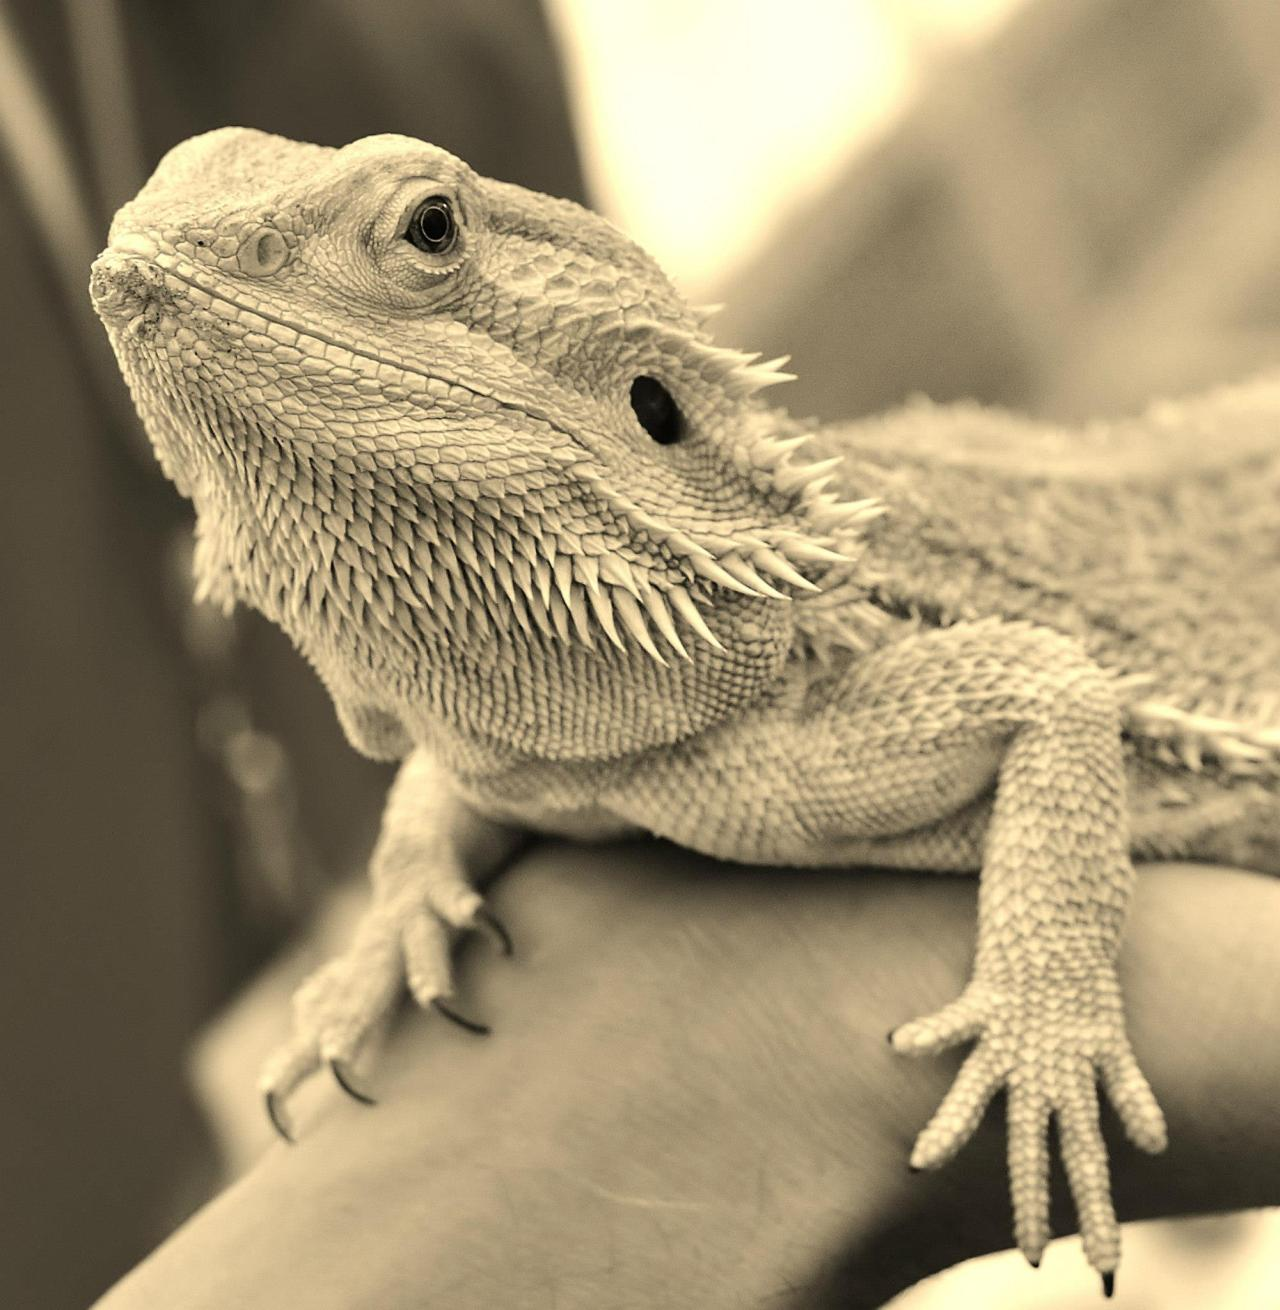 Bearded dragon is a common name for lizards belonging to genus Pogona. Native to Australia, they are often found basking on rocks and branches during mornings and afternoons. NYSCI's bearded dragon here in picture loves interacting and is definitely not camera shy.  If you would love to see pictures of our bearded dragon more frequently, like or re-blog this post.